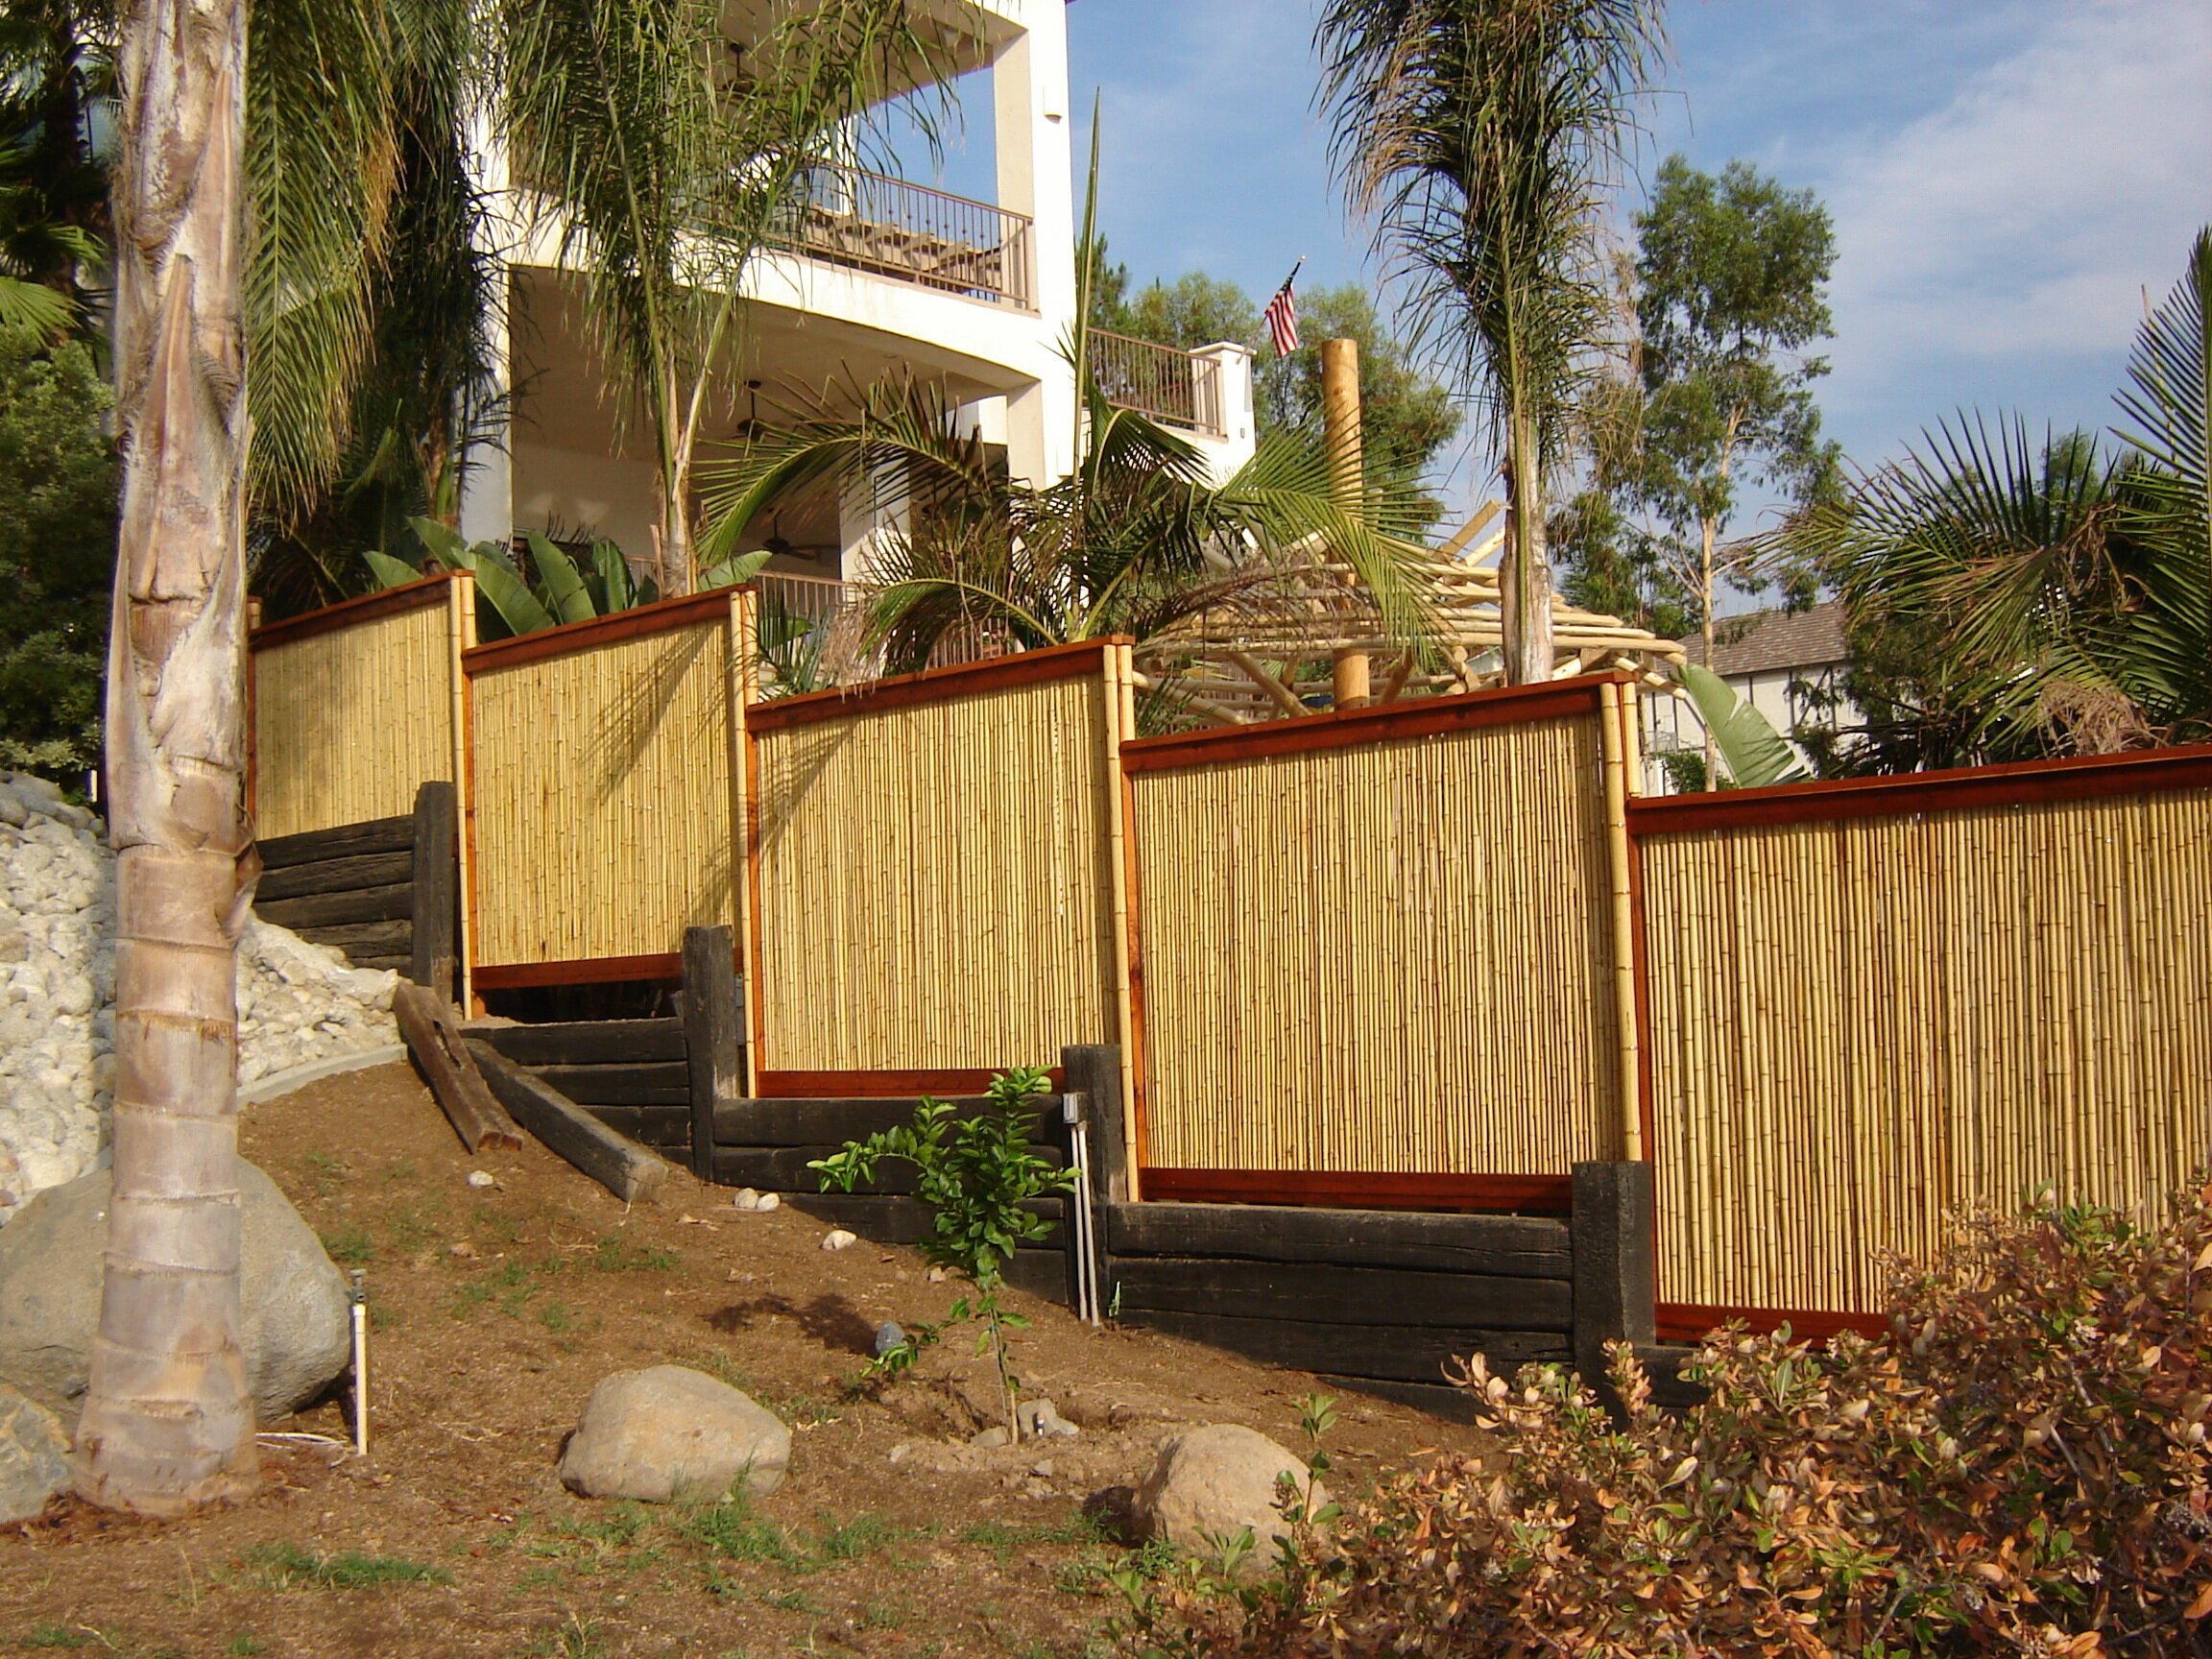 Backyard X-Scapes Rolled Bamboo Fencing & Reviews | Wayfair